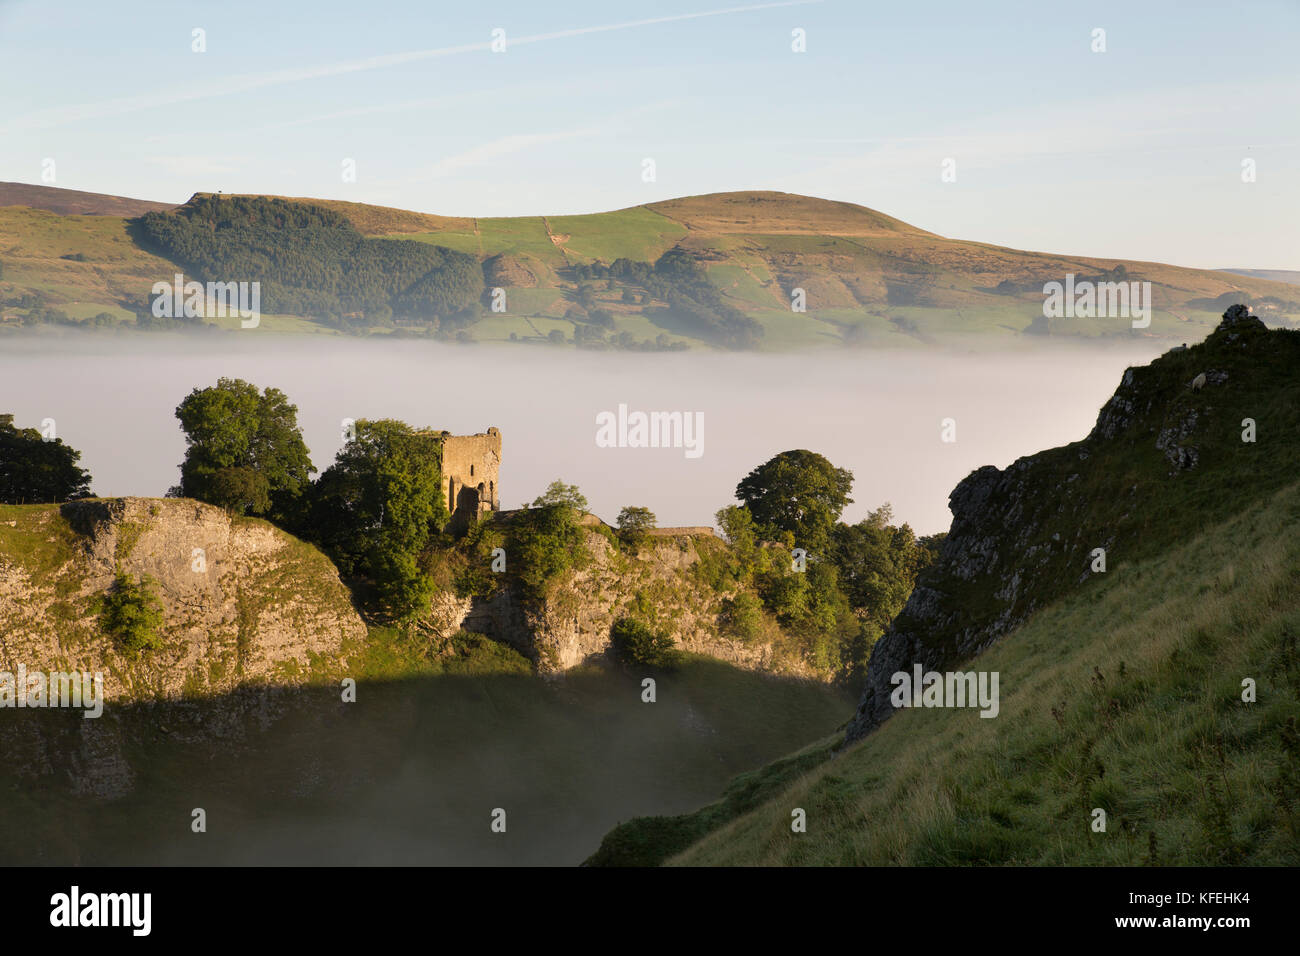 Cave Dale; Misty Morning; View of Lose Hill; Derbyshire; UK - Stock Image